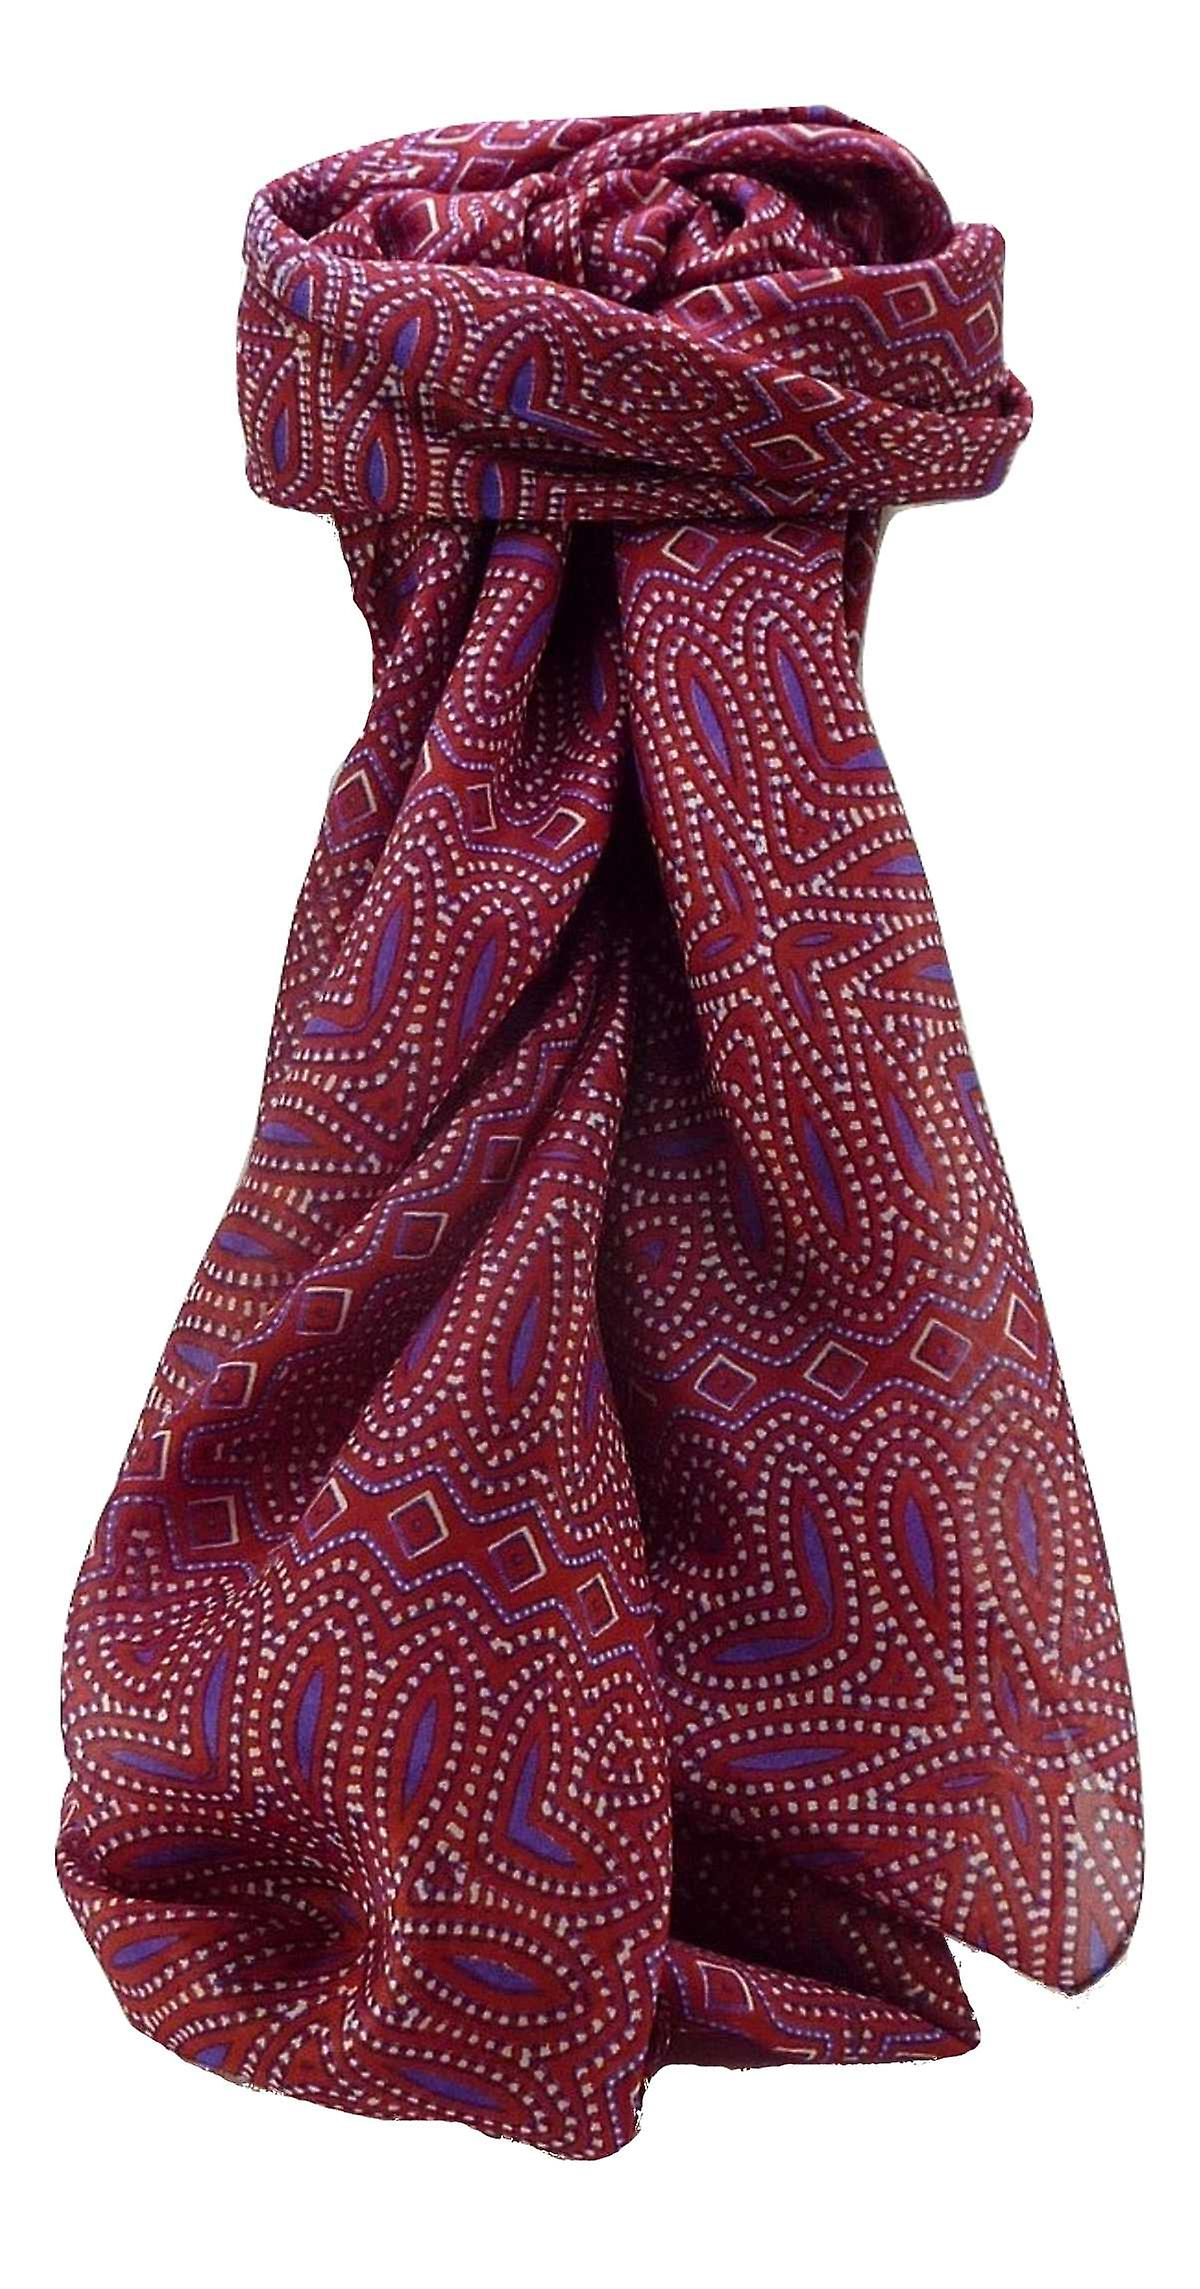 Mulberry Silk Contemporary Square Scarf Geometric G109 by Pashmina & Silk